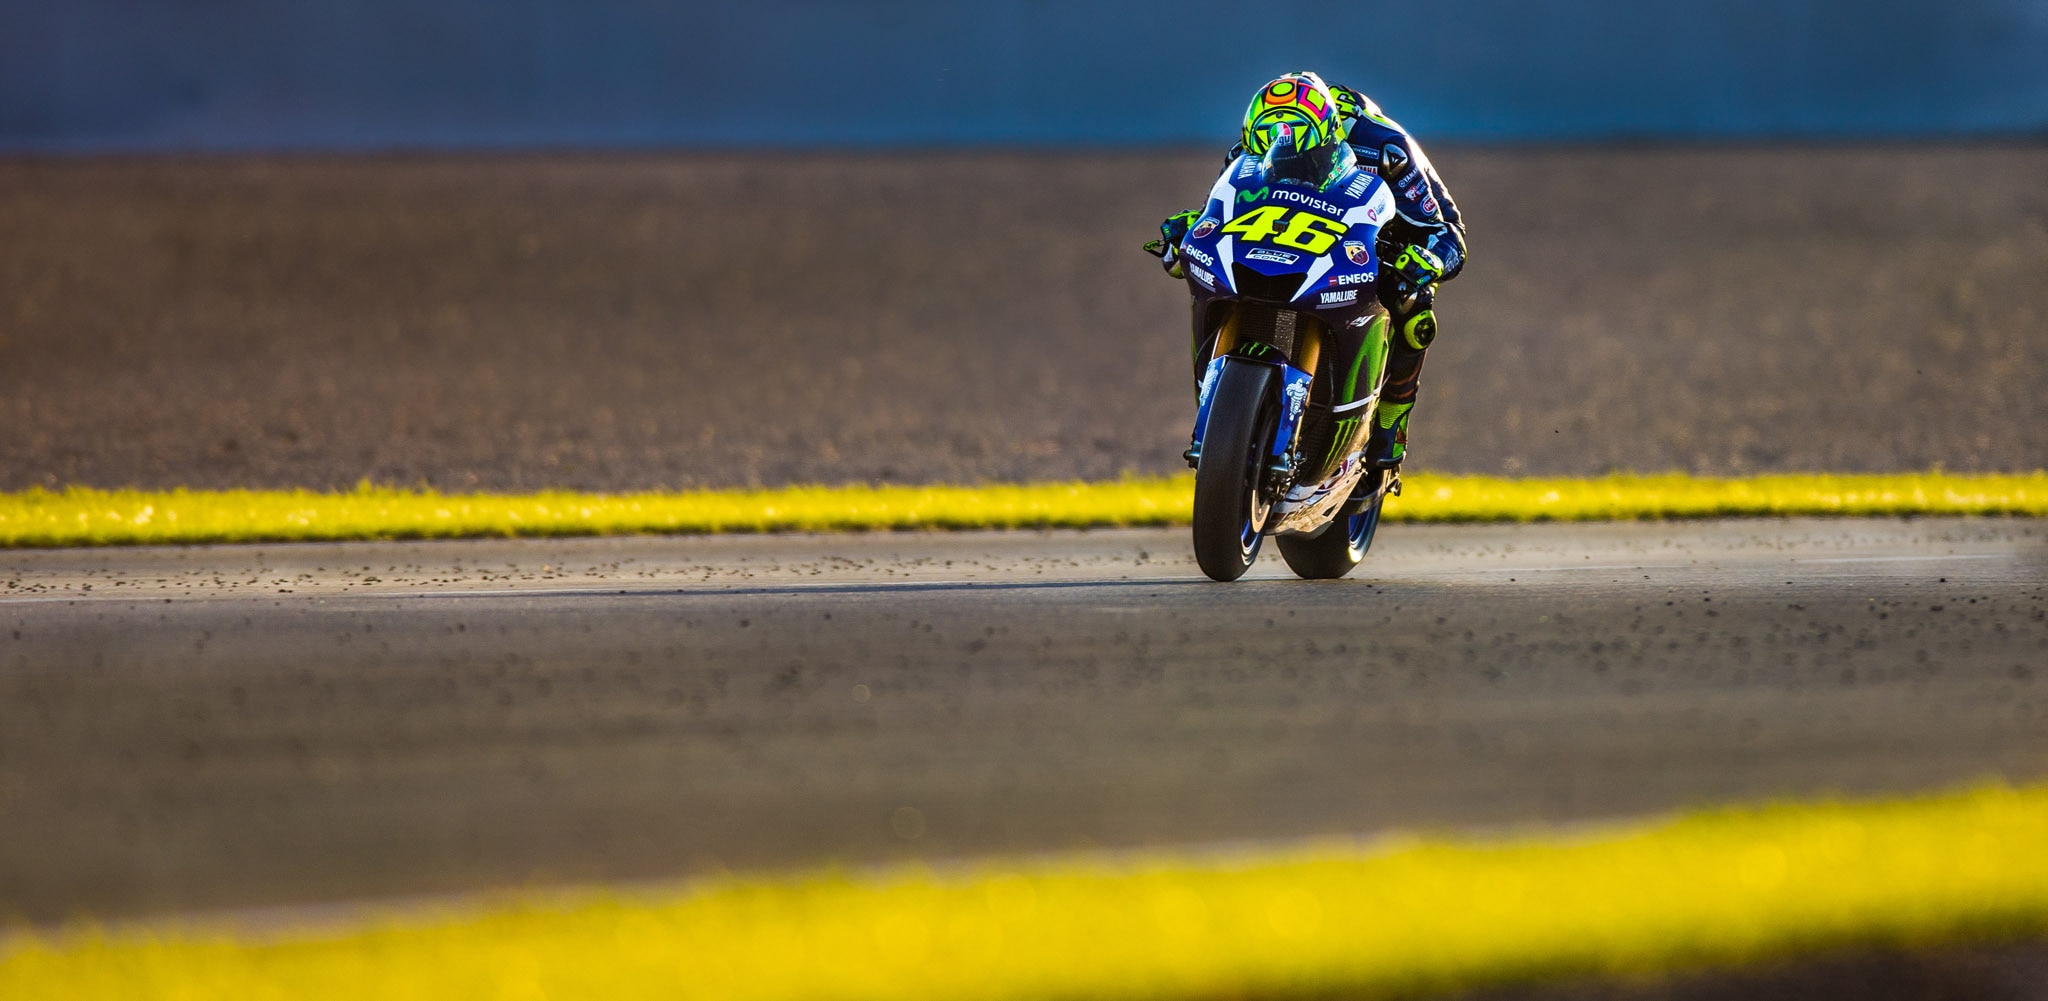 The Legend of Valentino Rossi is Still Going Strong at 39